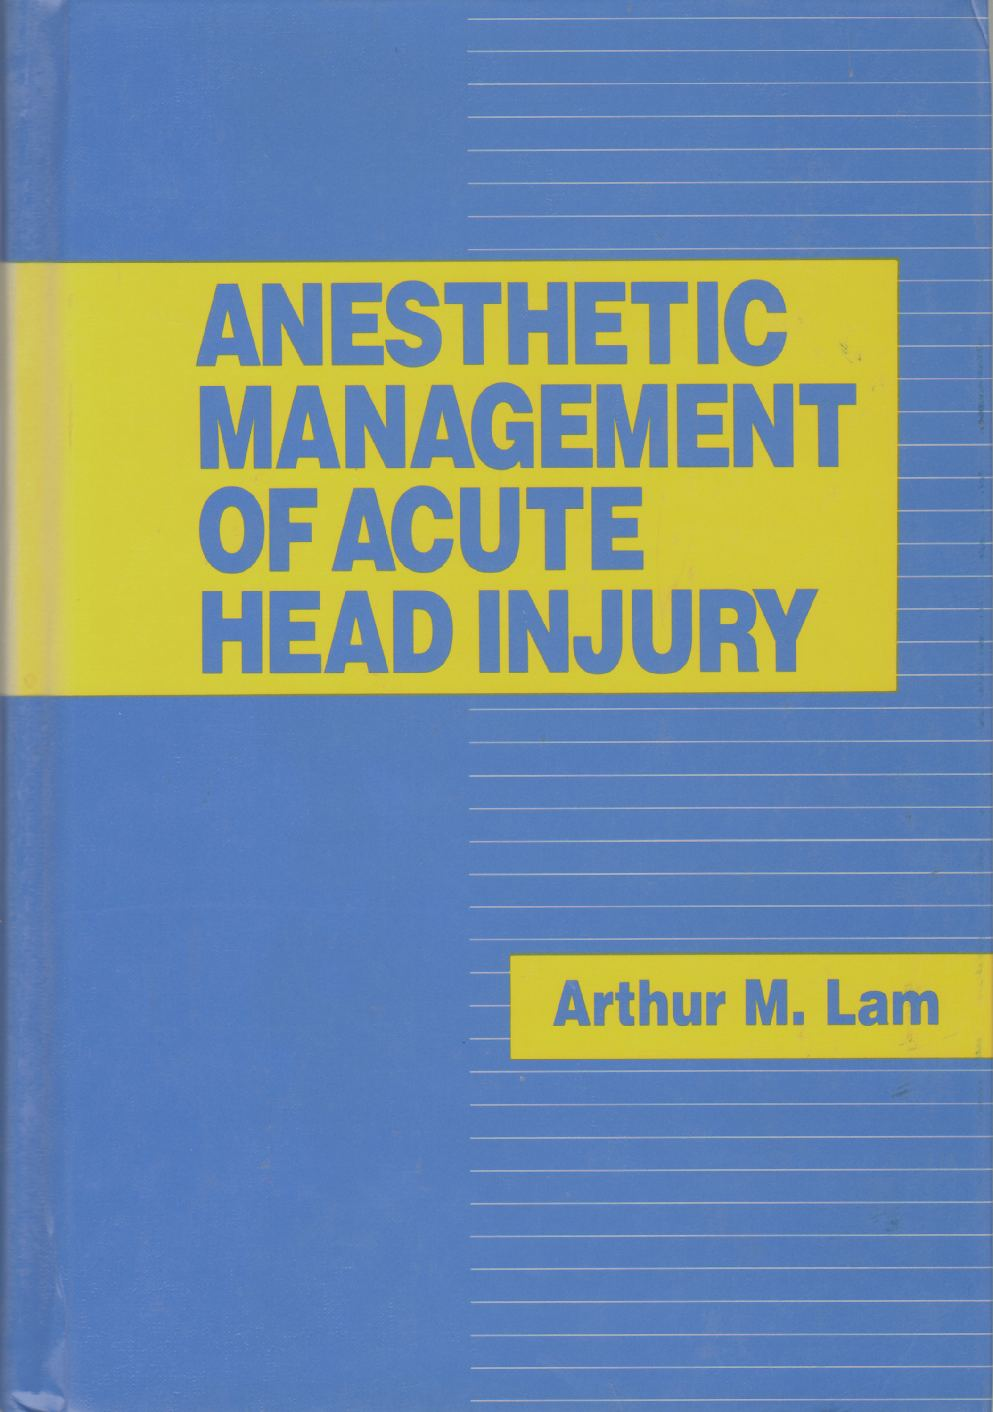 Image for ANESTHETIC MANAGEMENT OF ACUTE HEAD INJURY